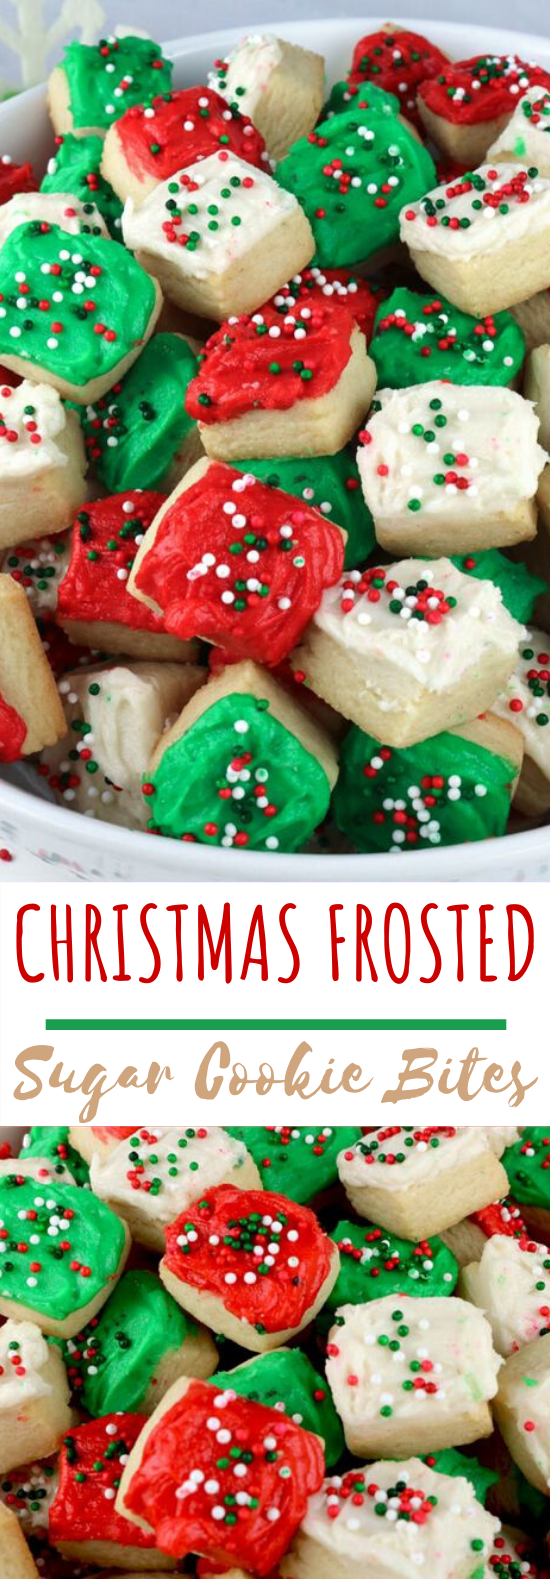 Christmas Sugar Cookie Bites #cookies #desserts #baking #easy #christmas